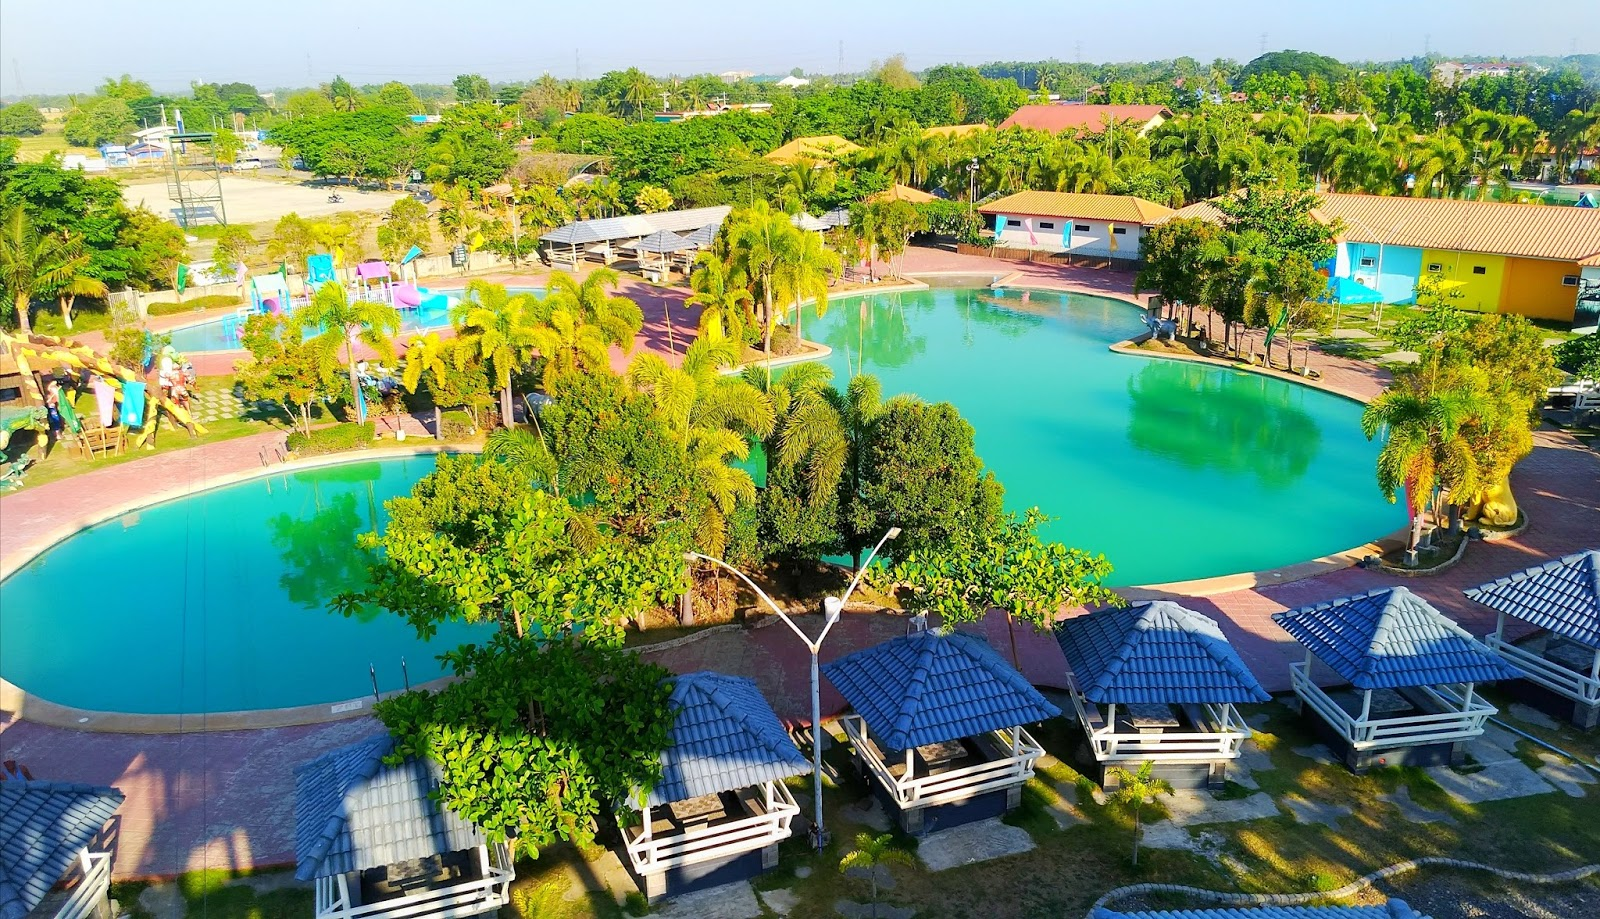 Crystal Waves Hotel And Resort The Home Of The First Wave Pool